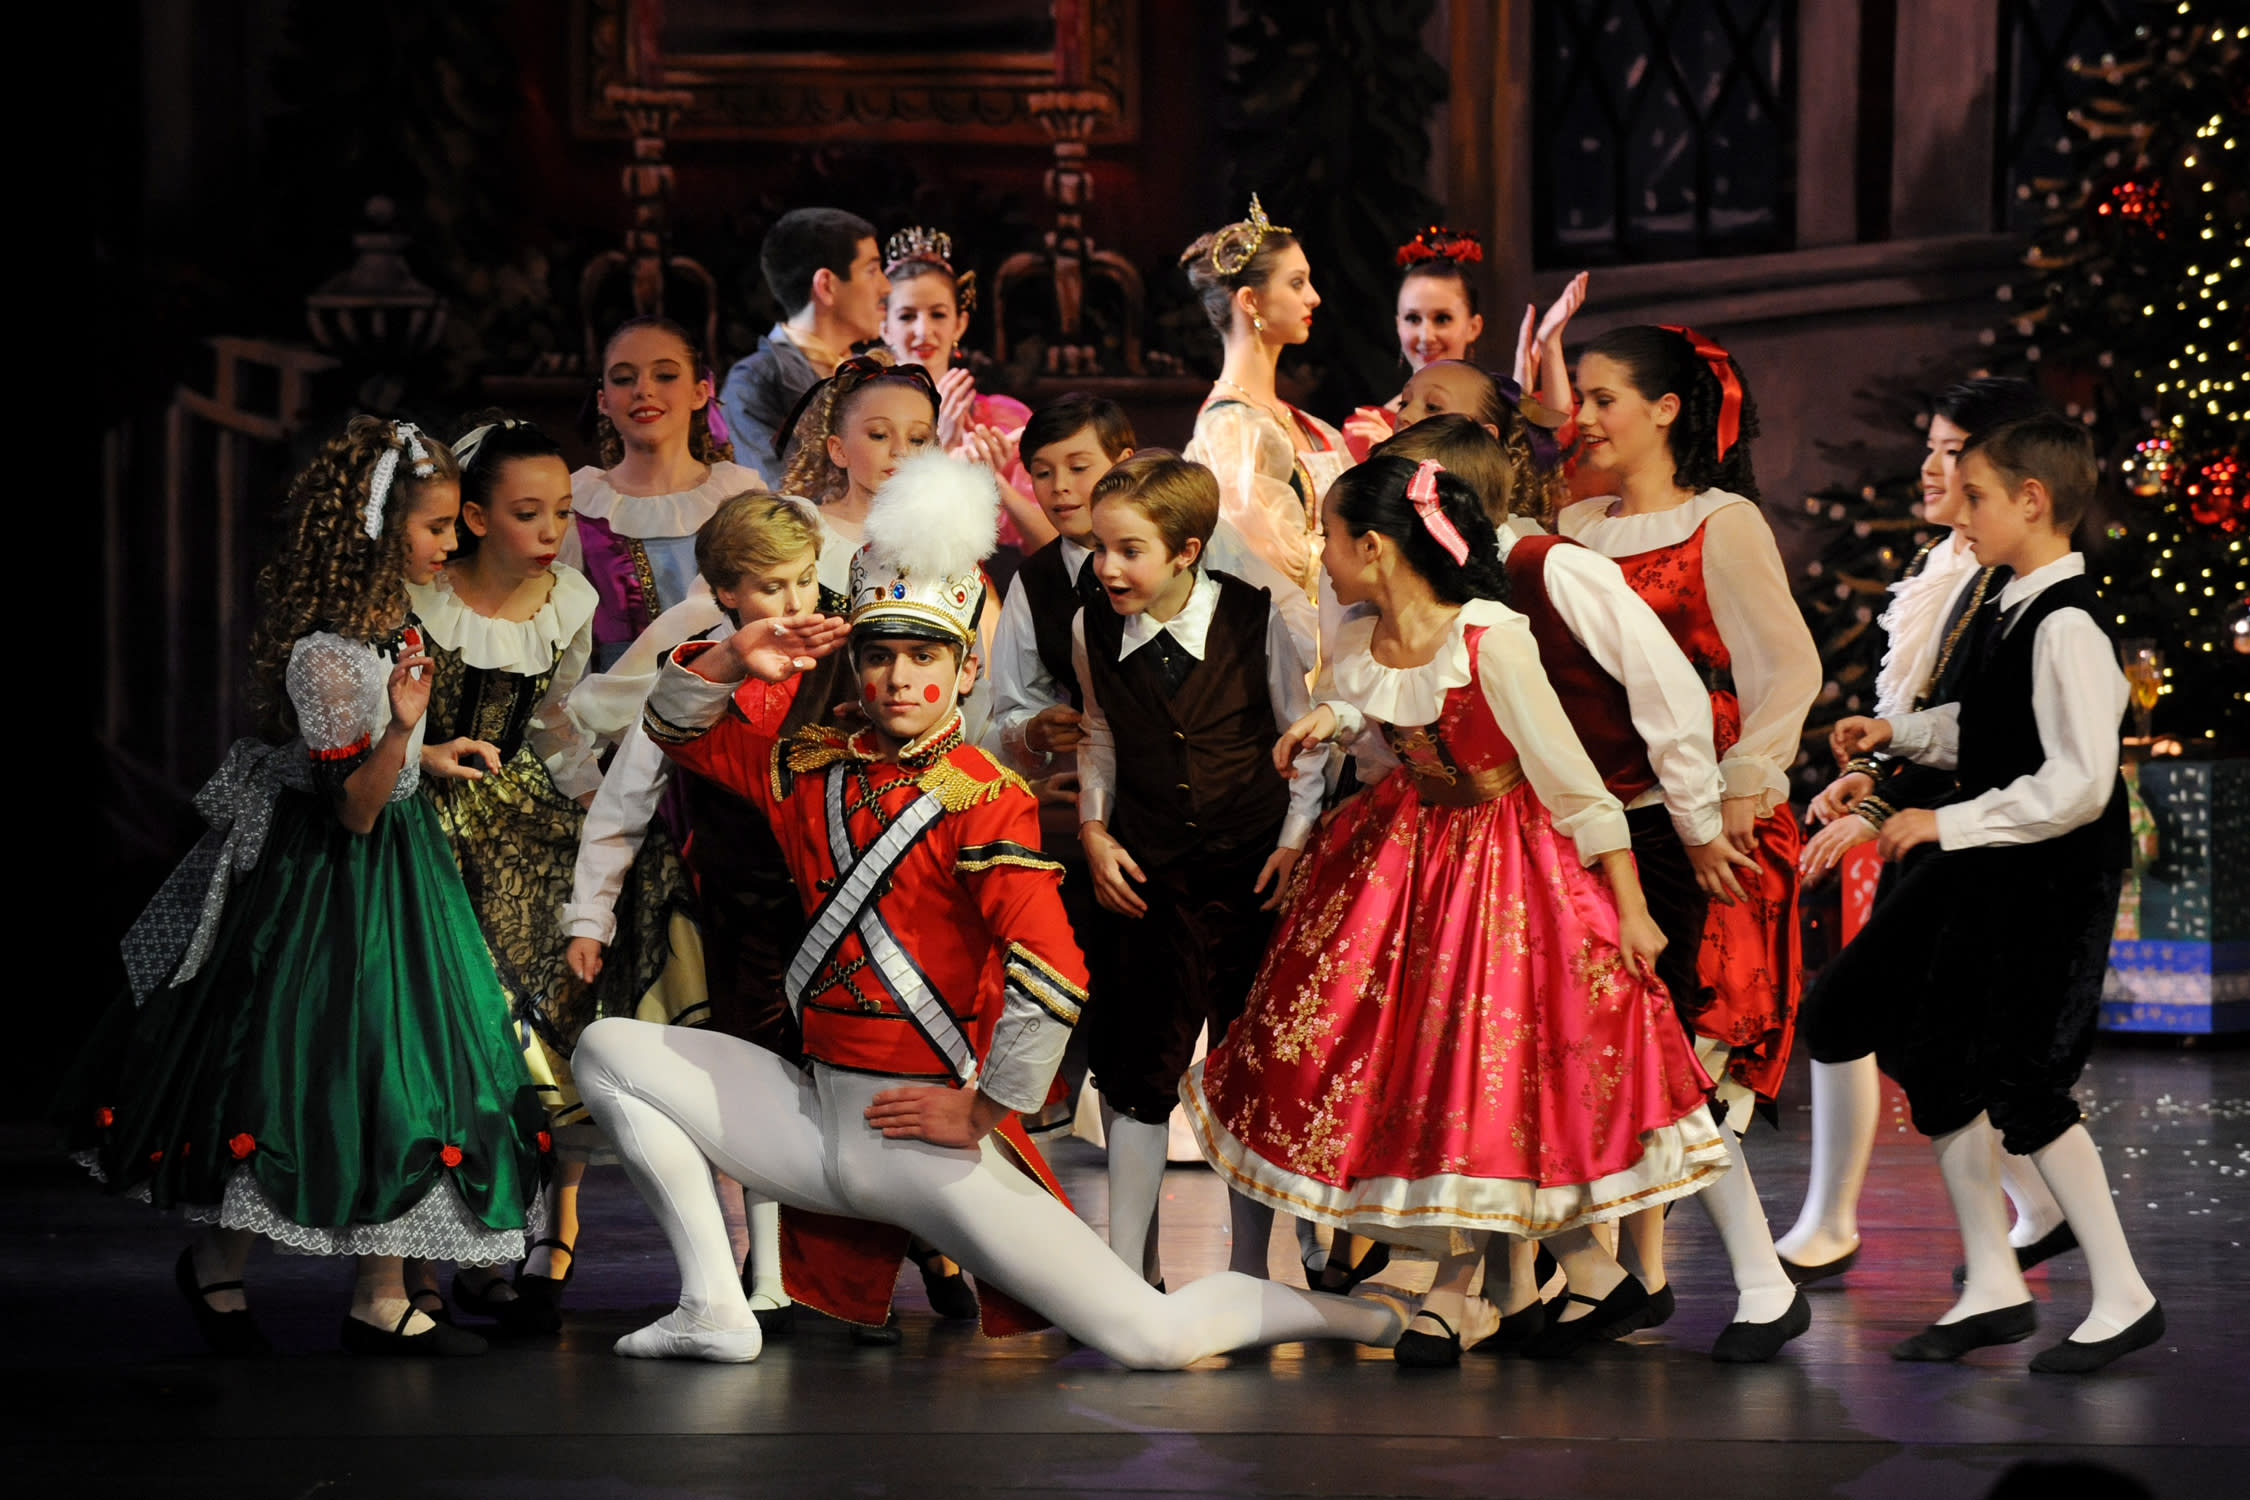 The toy soldier dancing in the Nutcracker